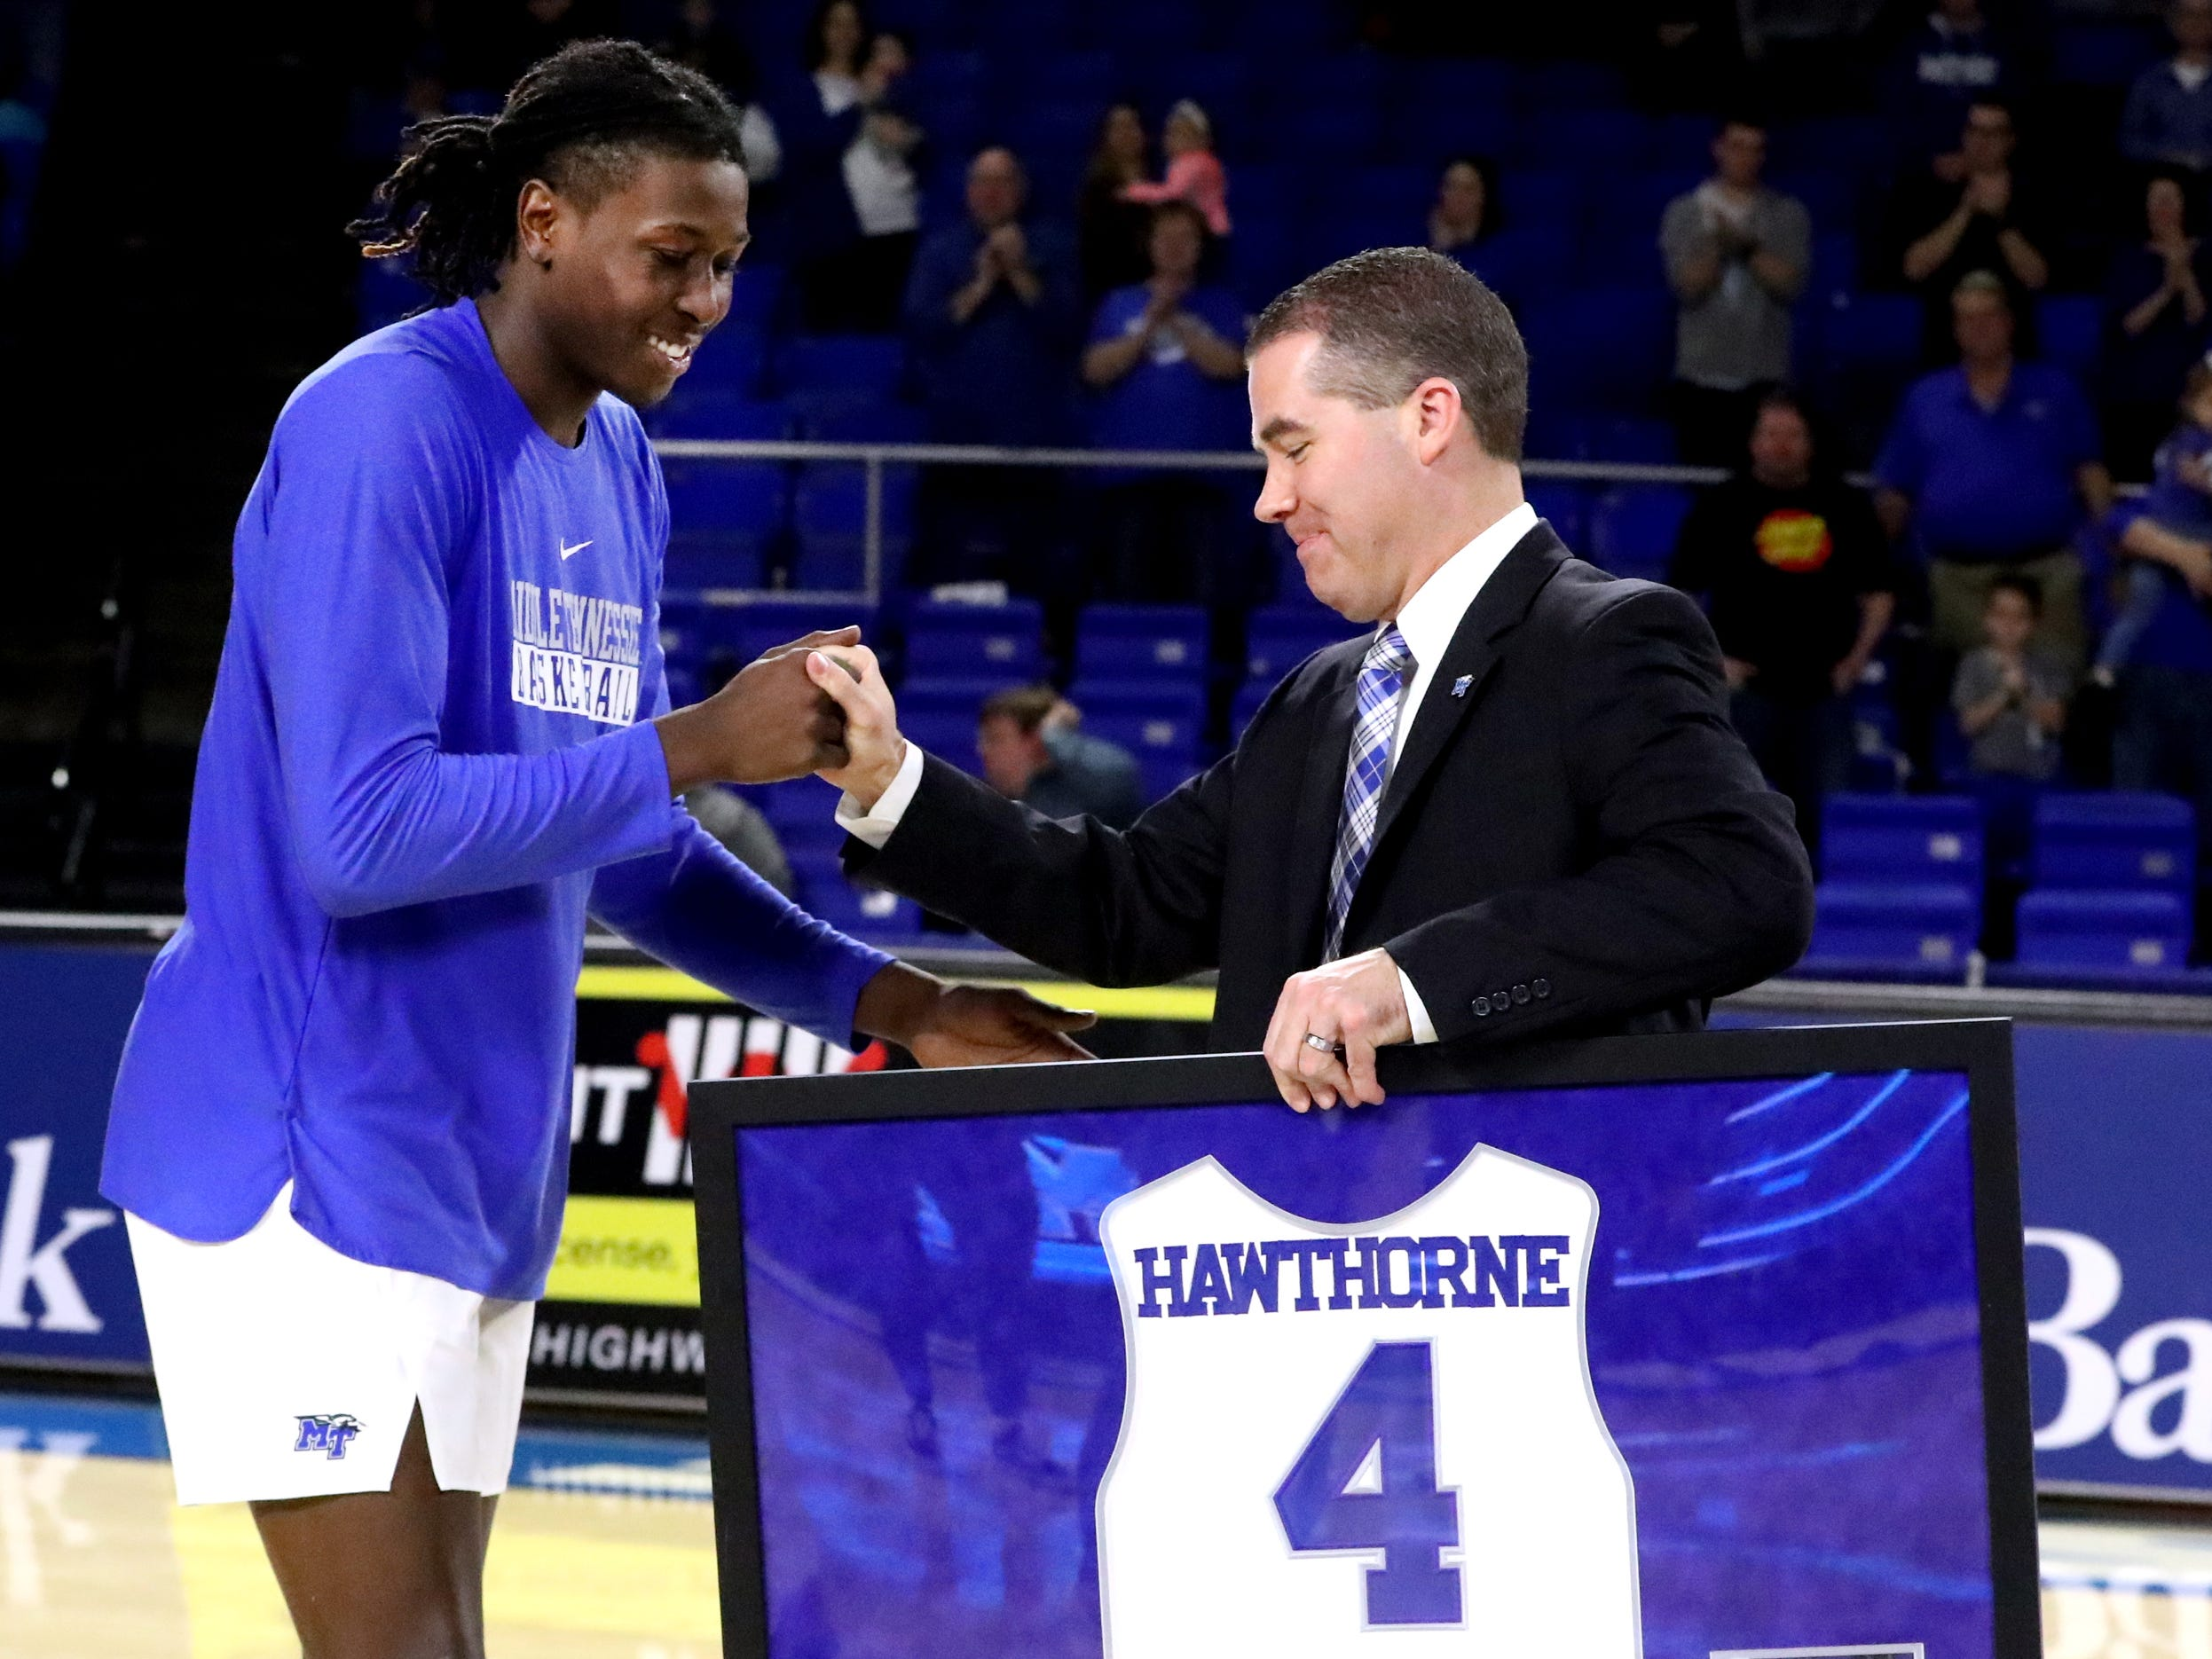 MTSU head coach Nick McDevitt honors MTSU forward James Hawthorne (4) with a framed jersey during MTSU's senior night before the game against UTEP on Saturday, March 9, 2019, at Murphy Center in Murfreesboro, Tenn.